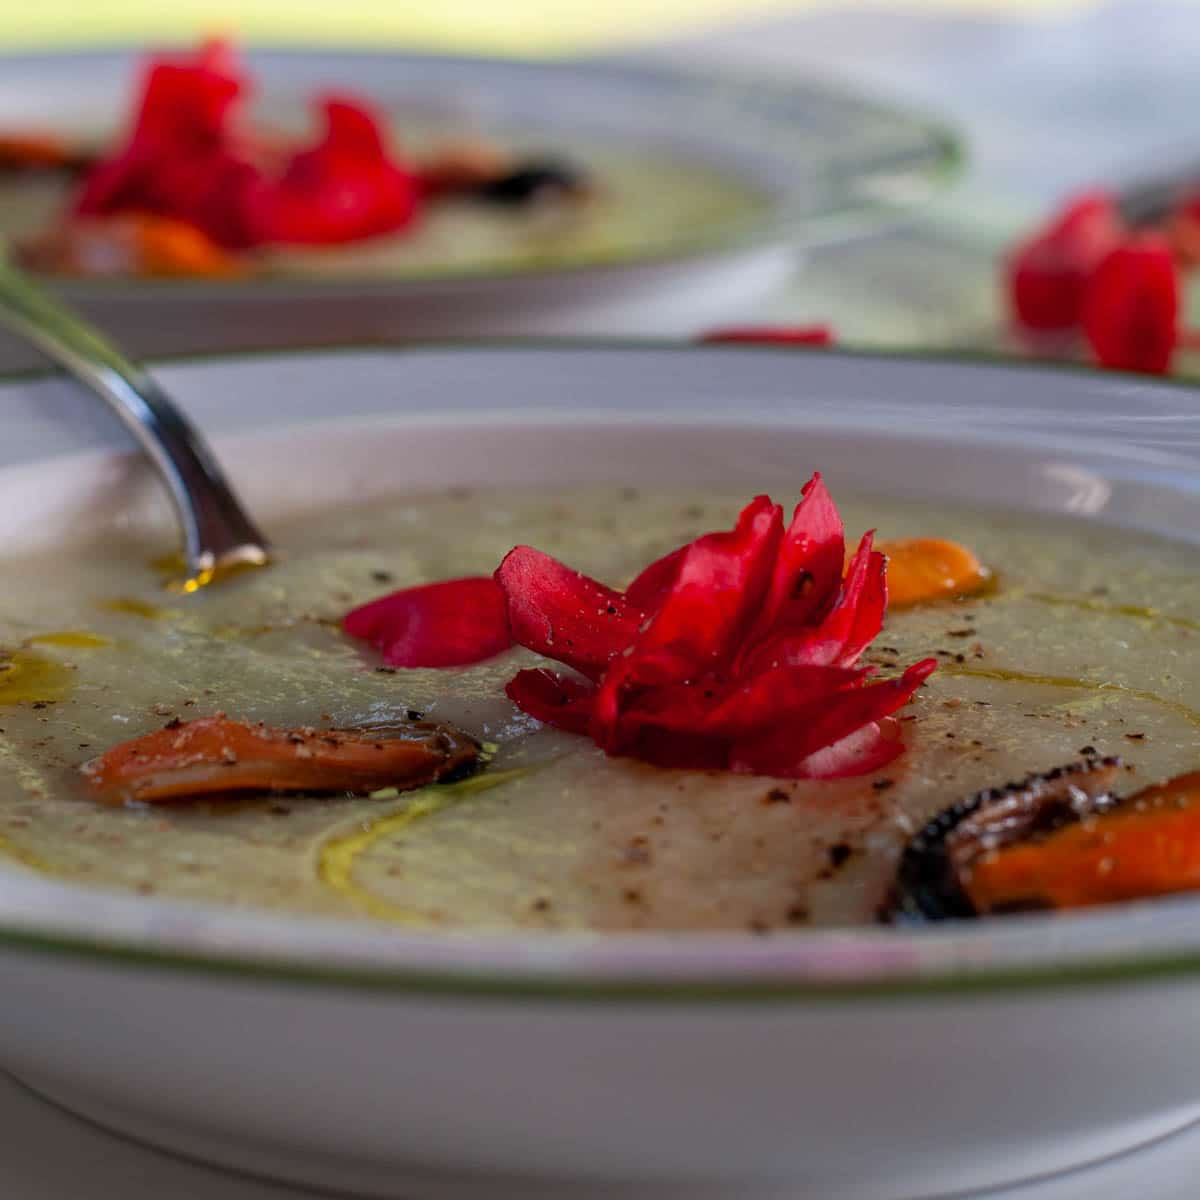 Chayote mousse recipe with Begonia and Mussels on a plate